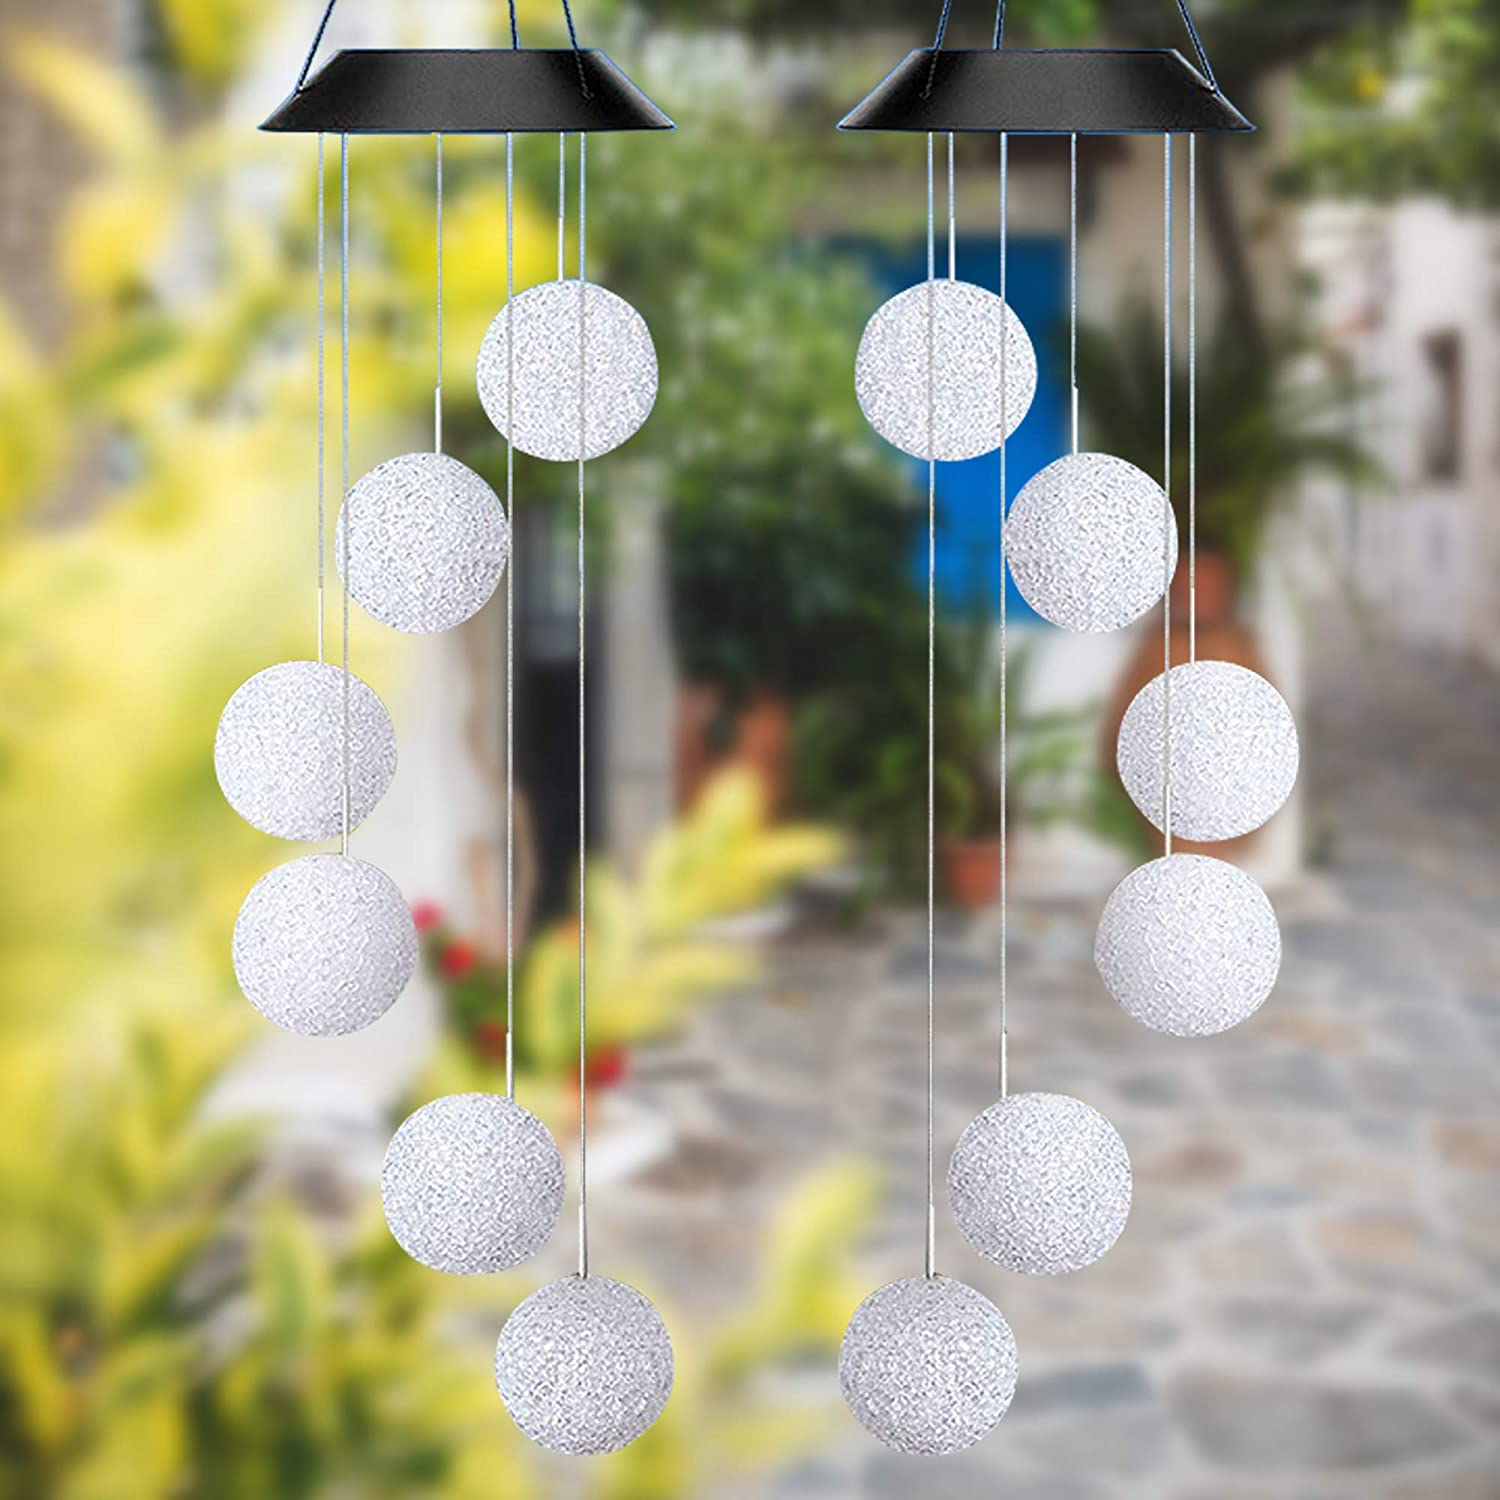 2 Pack LED Solar Powered Crystal Ball Wind Chime, Waterproof Wind Chimes with Colorful Light for Yard, Garden, Home, Veranda Decoration, Ideal Gift for Christmas, Birthday, Thanksgiving, Halloween